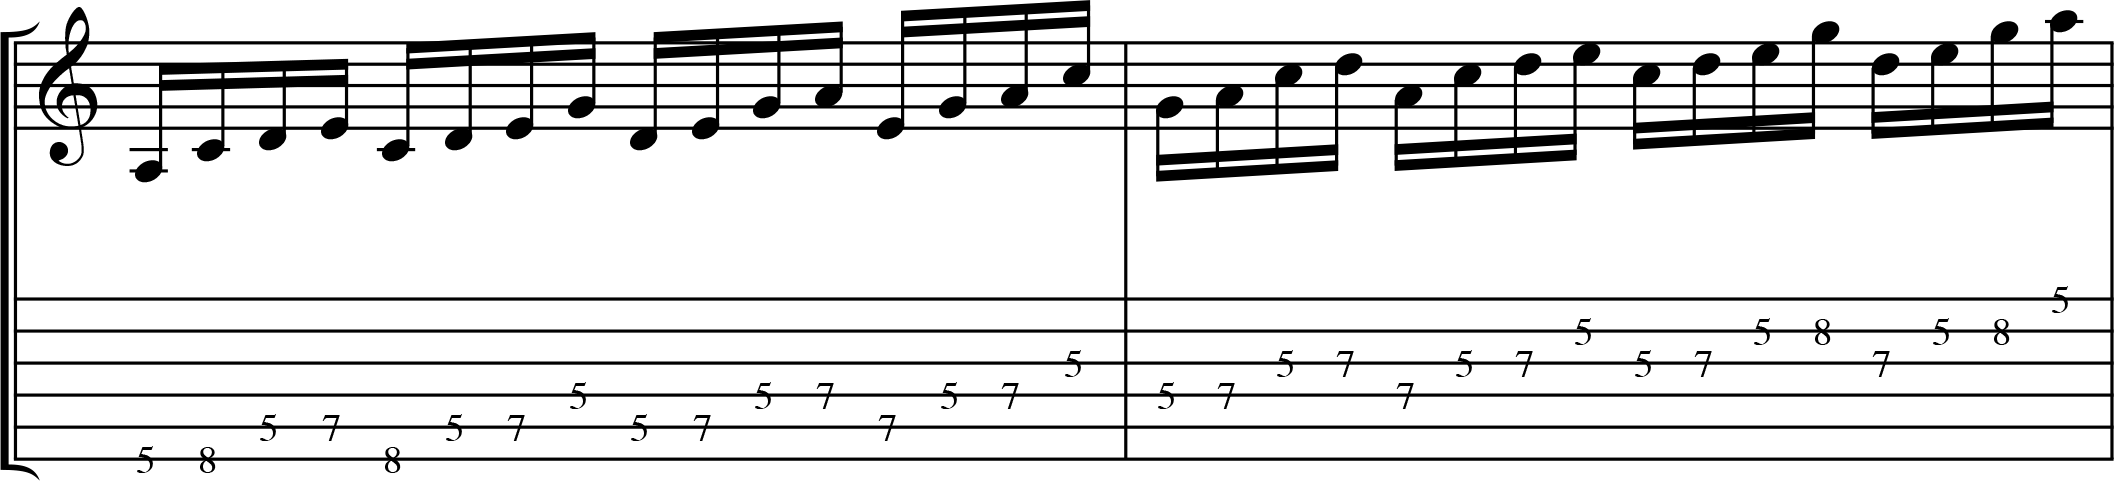 Notation for pentatonic scale played in sixteenth notes.